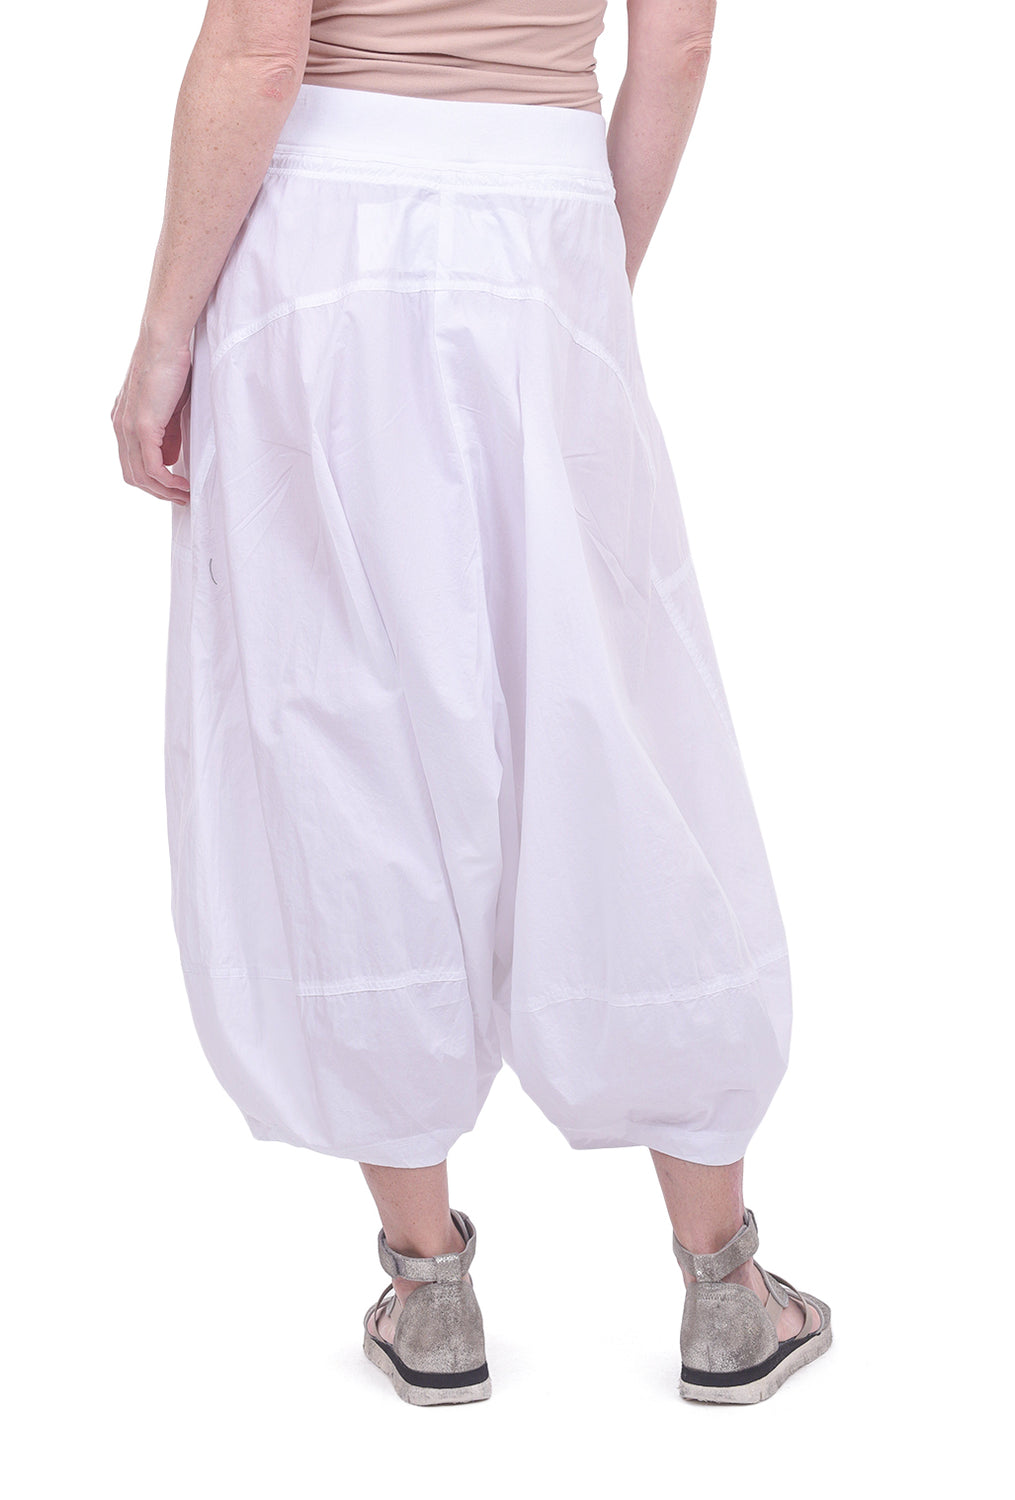 Rundholz Black Label Poplin Lantern Pants, White